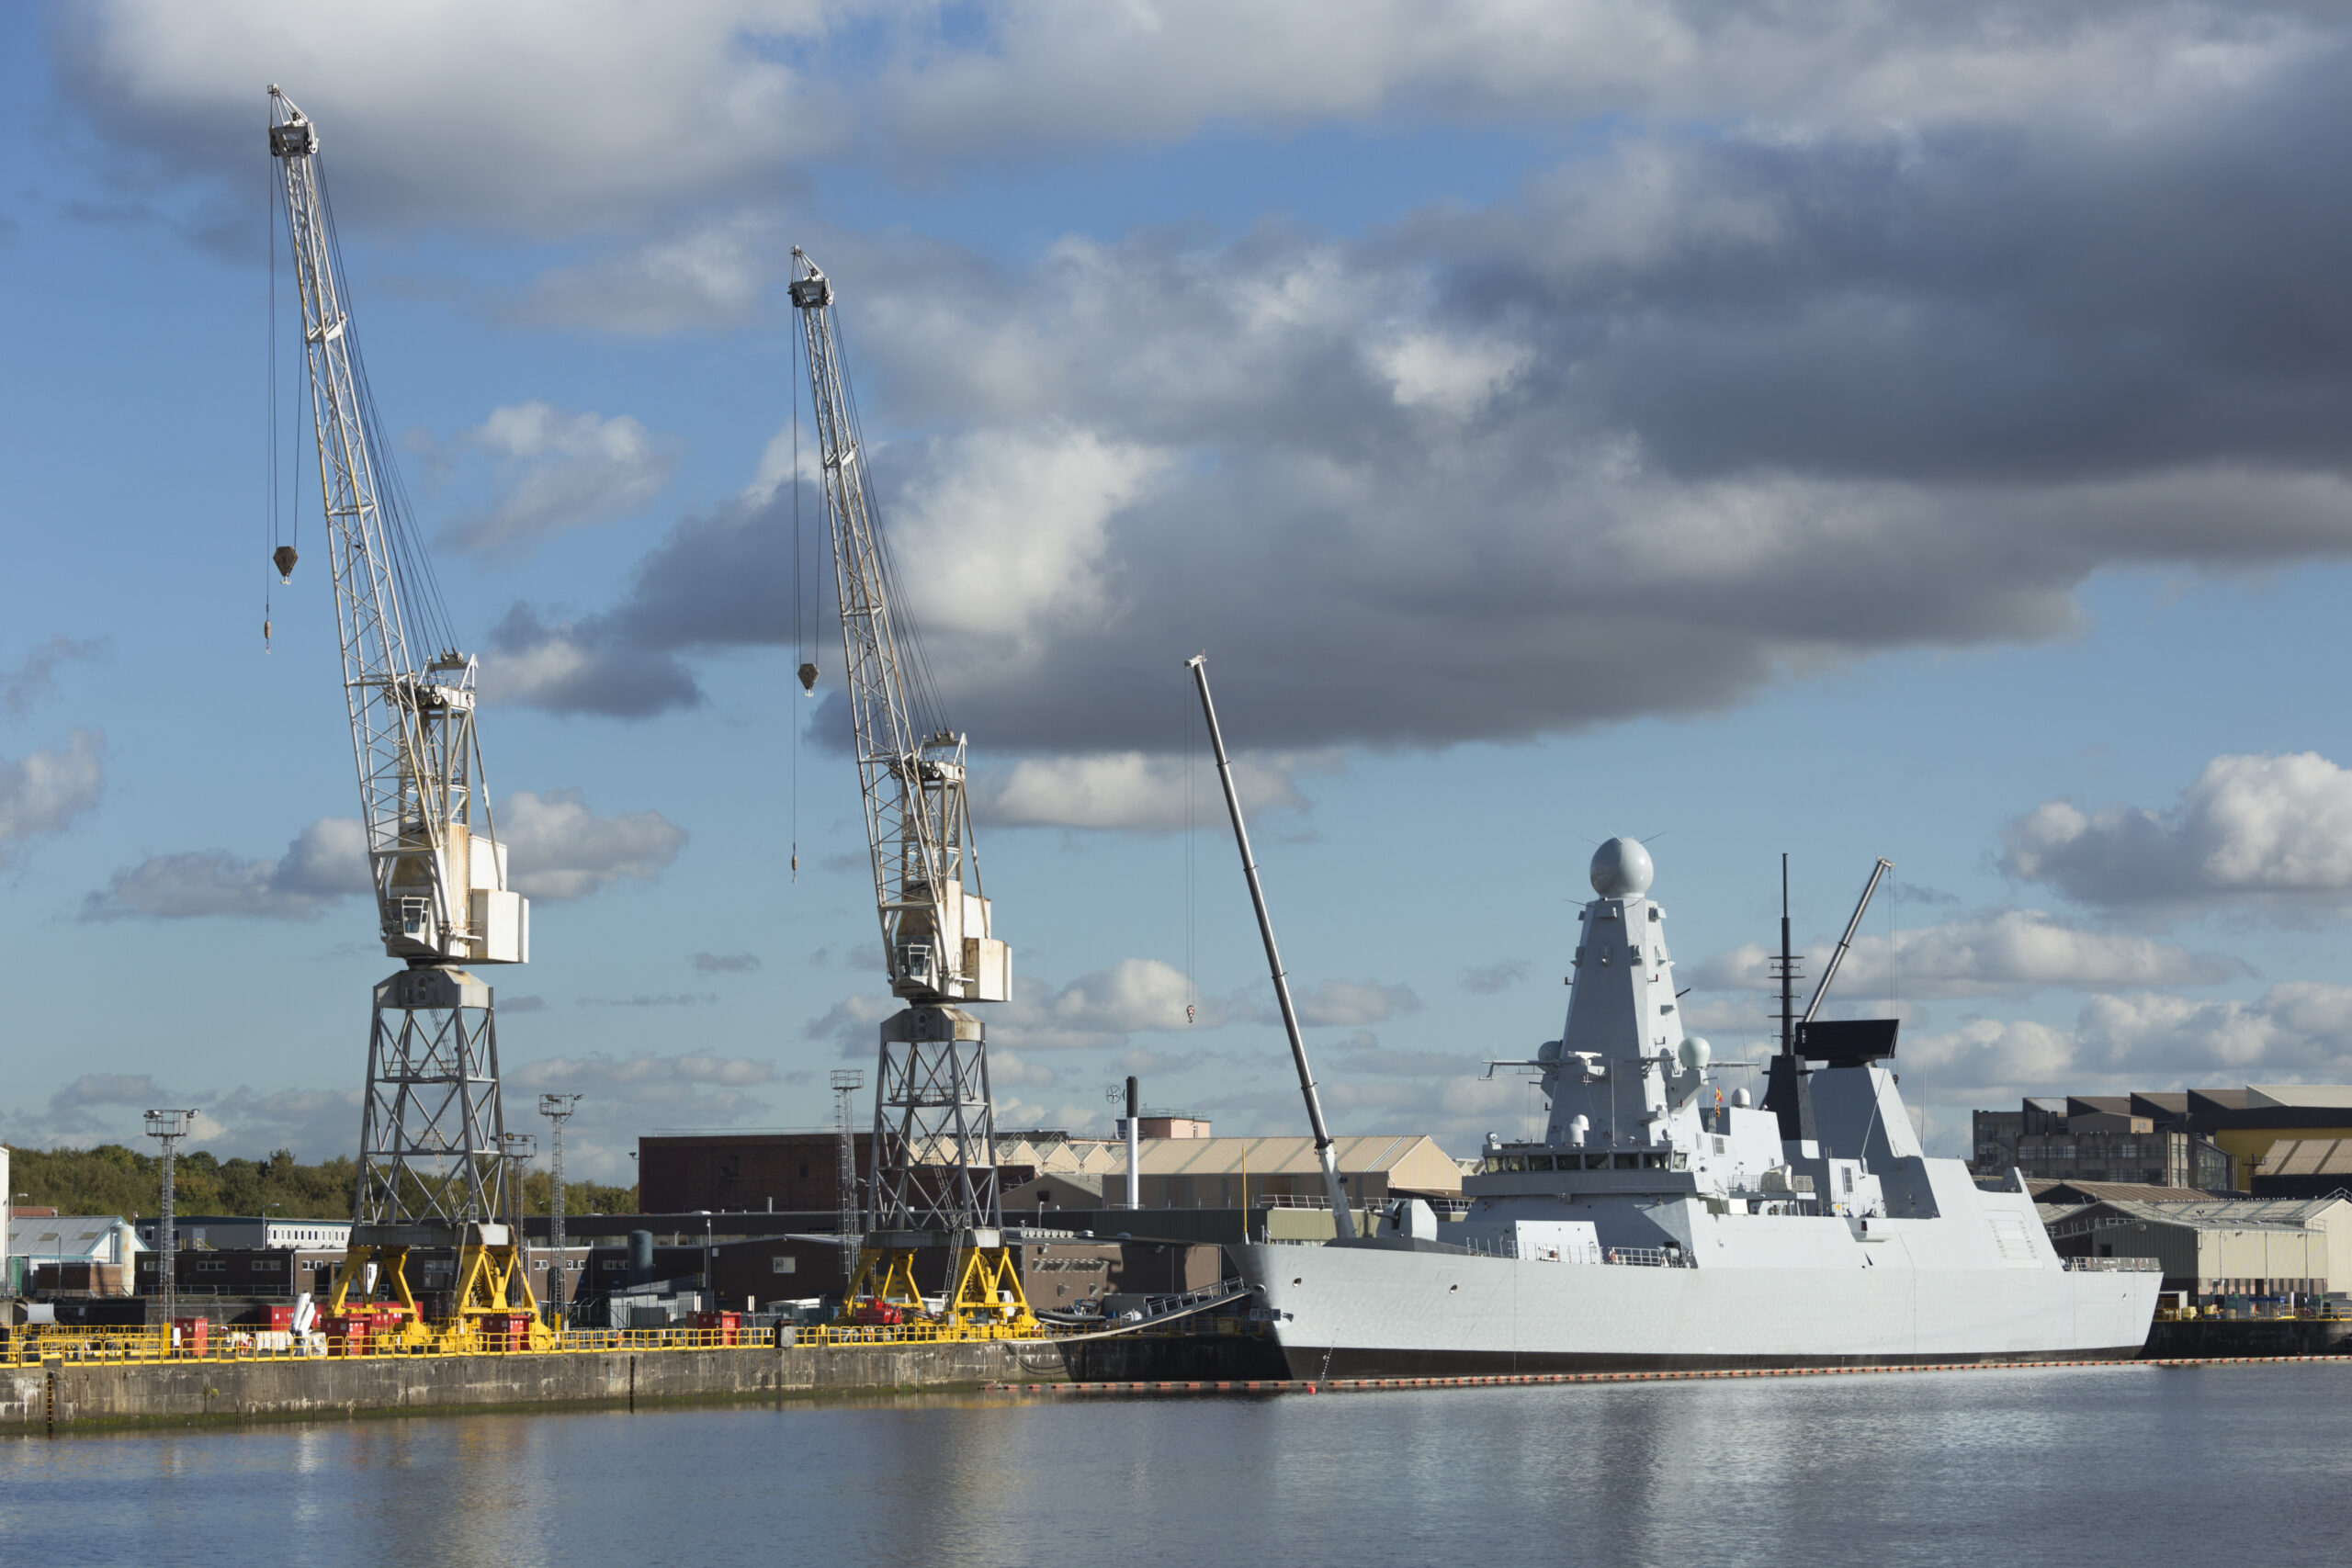 A Royal Navy air defence destroyer warship under construction at Scotstoun on the River Clyde in Glasgow.